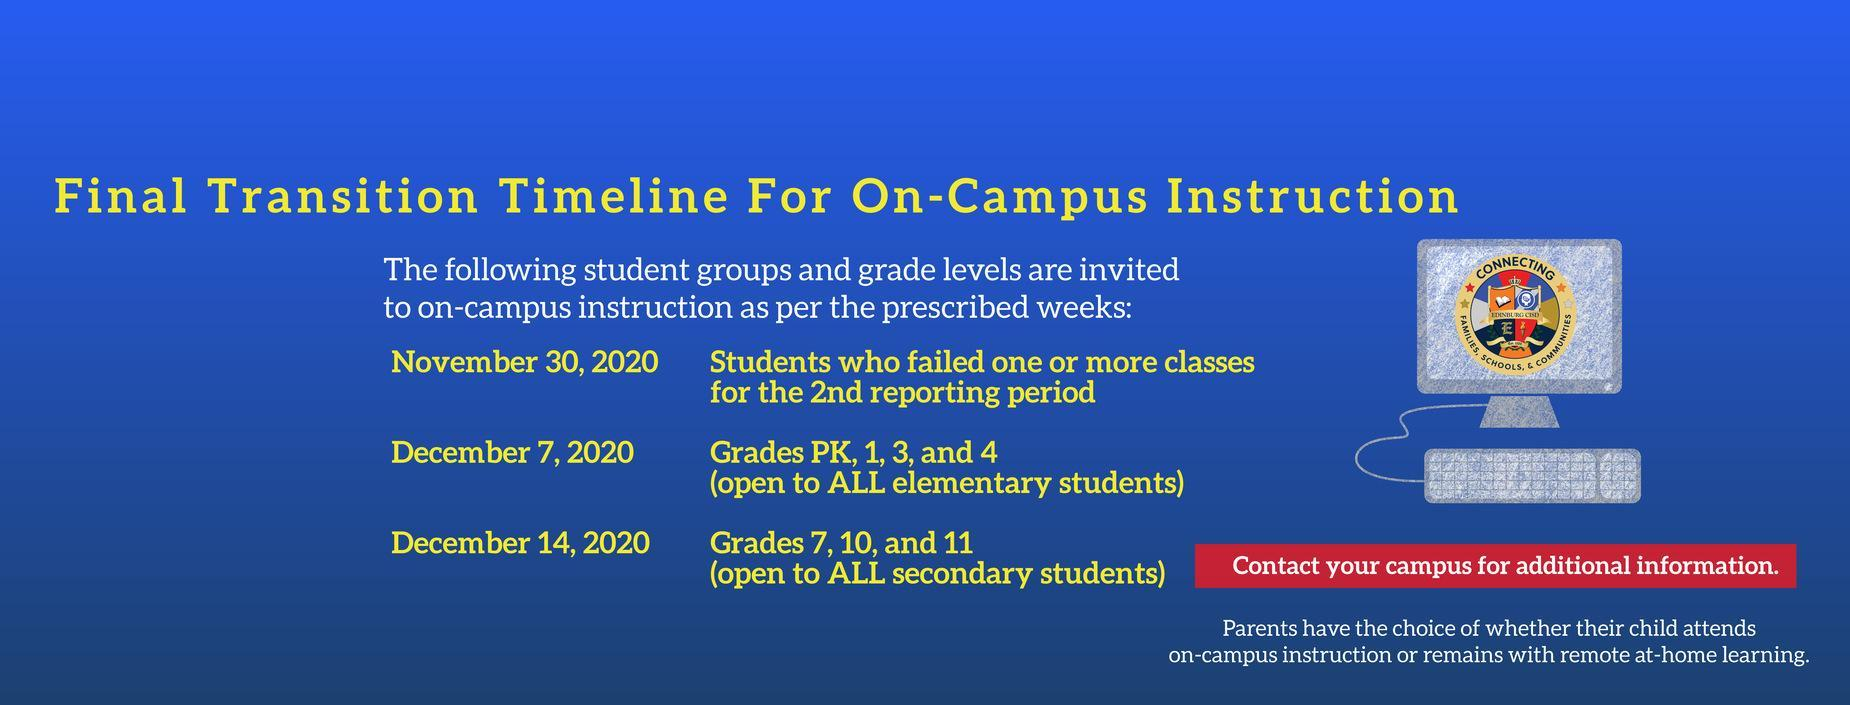 Final Transition Timeline For On-Campus Instruction    The following student groups and grade levels are invited to on-campus instruction as per the prescribed weeks:  November 30, 2020 – Students who failed one or more classes for the 2nd reporting period December 7, 2020 – Grades PK, 1, 3, and 4 (open to ALL elementary students) December 14, 2020 – Grades 7, 10, and 11 (open to ALL secondary students)  Contact your campus for additional information.  Parents have the choice of whether their child attends on-campus instruction or remains with remote at-home learning.